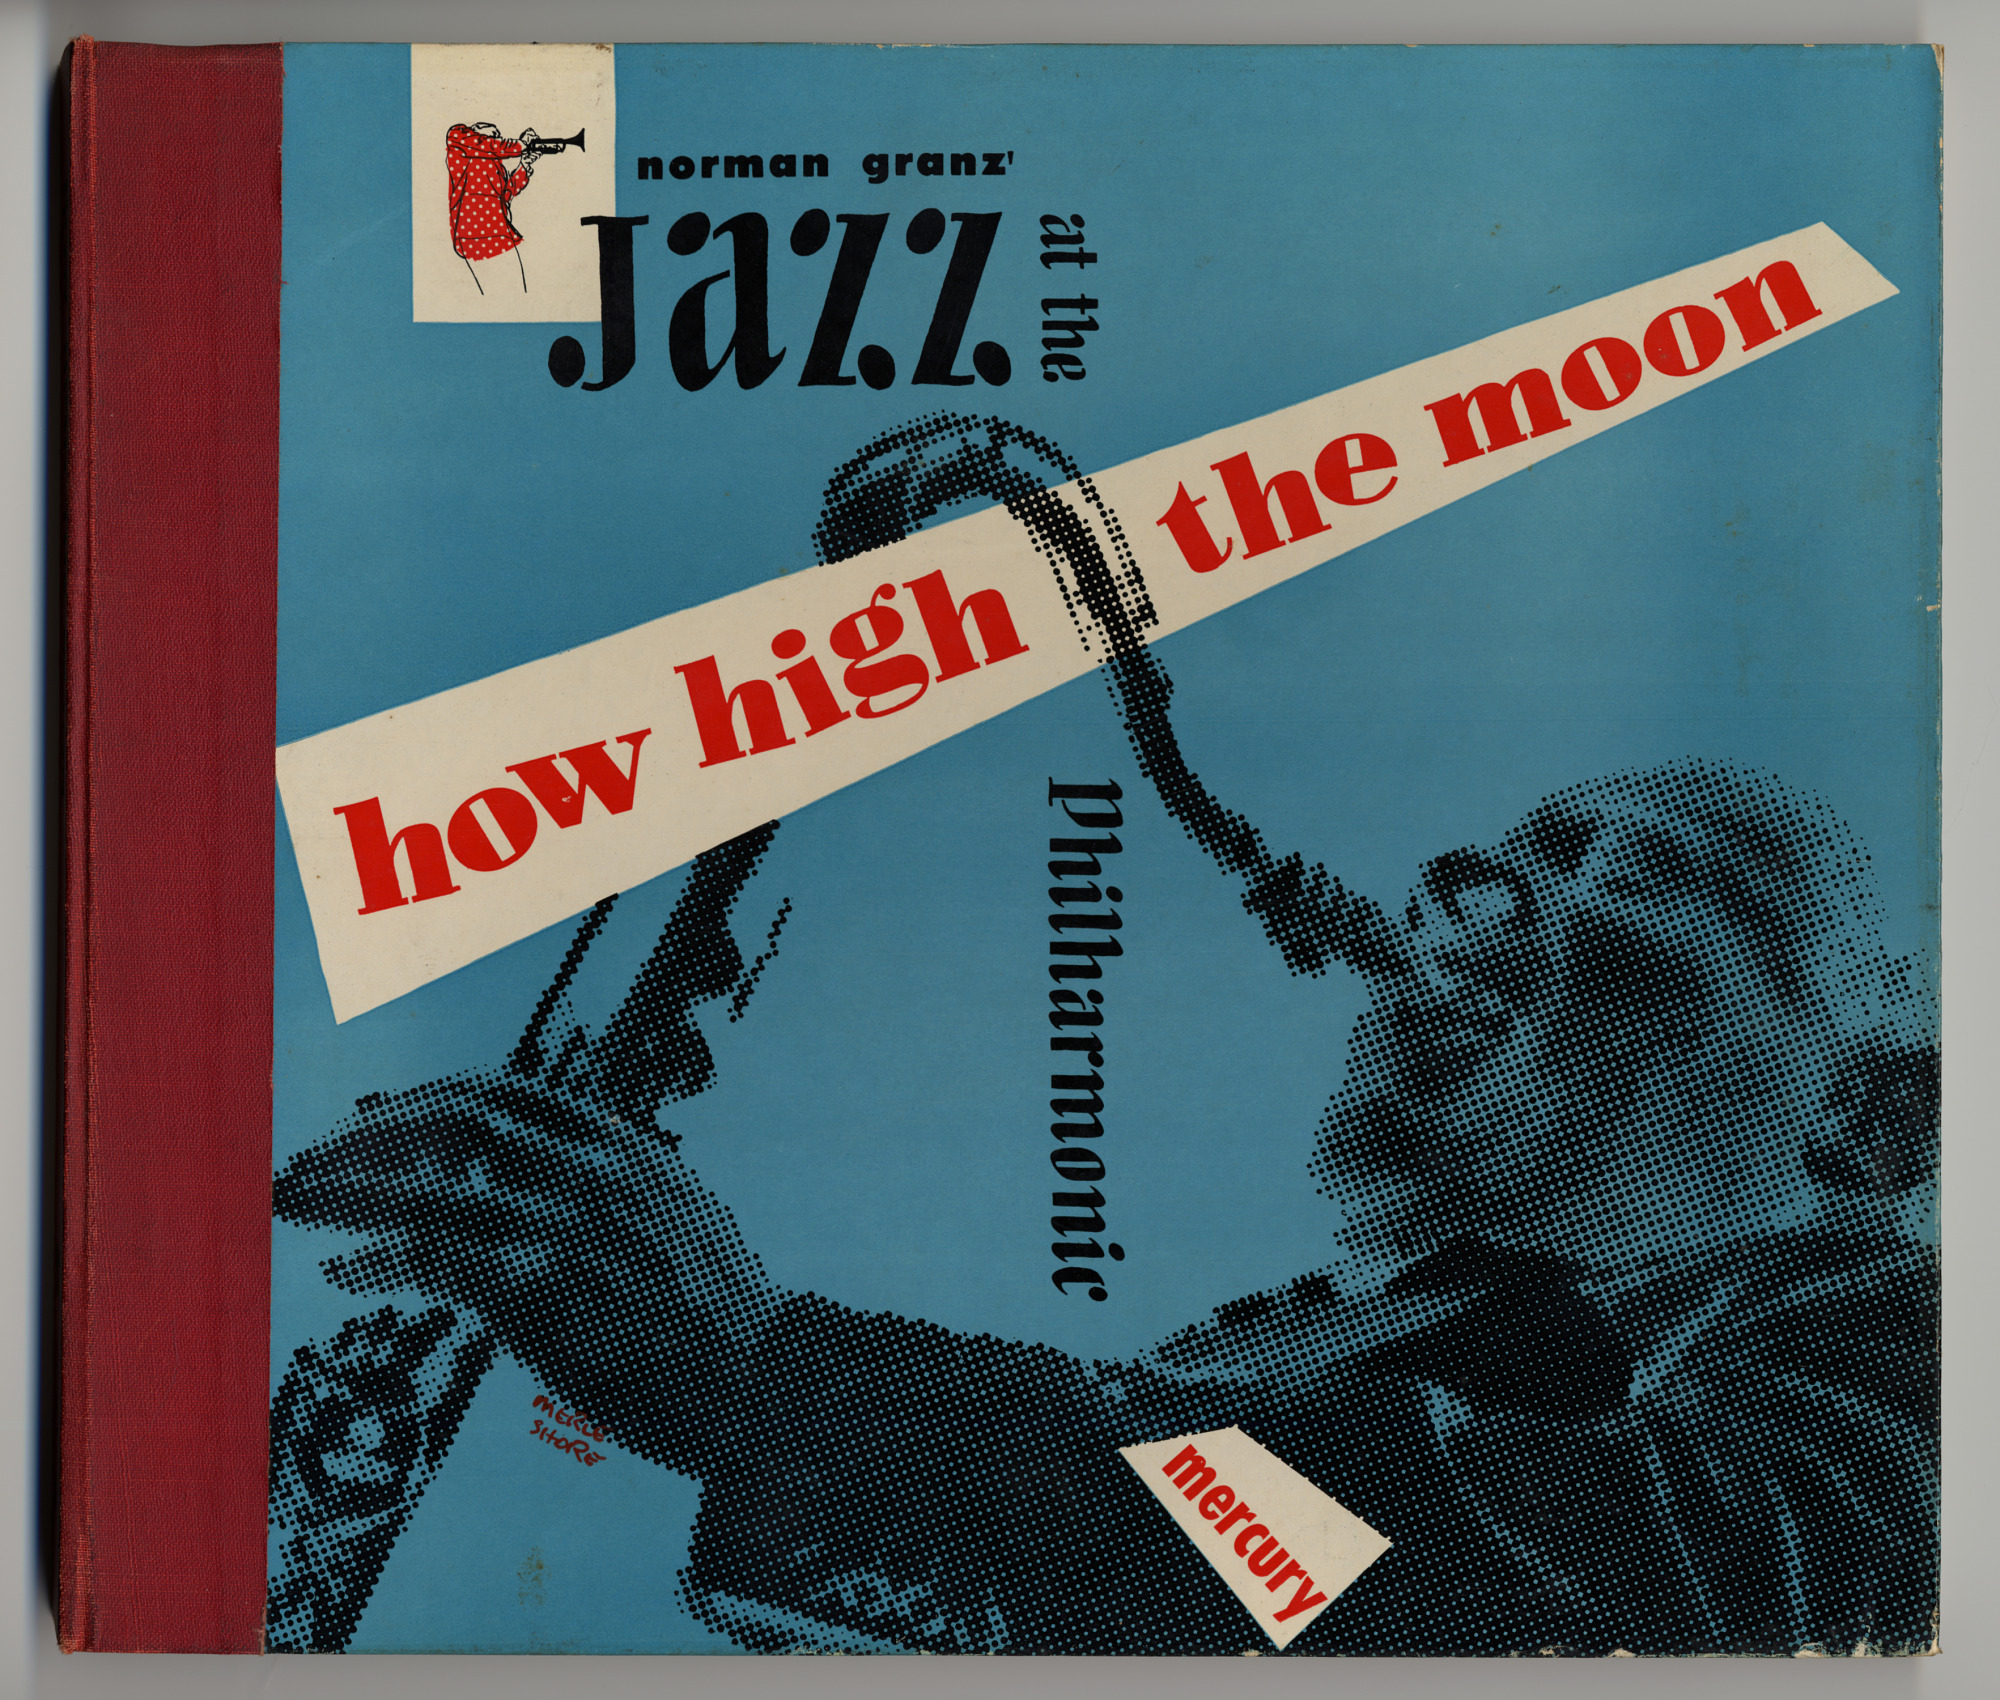 sound recording: How High the Moon